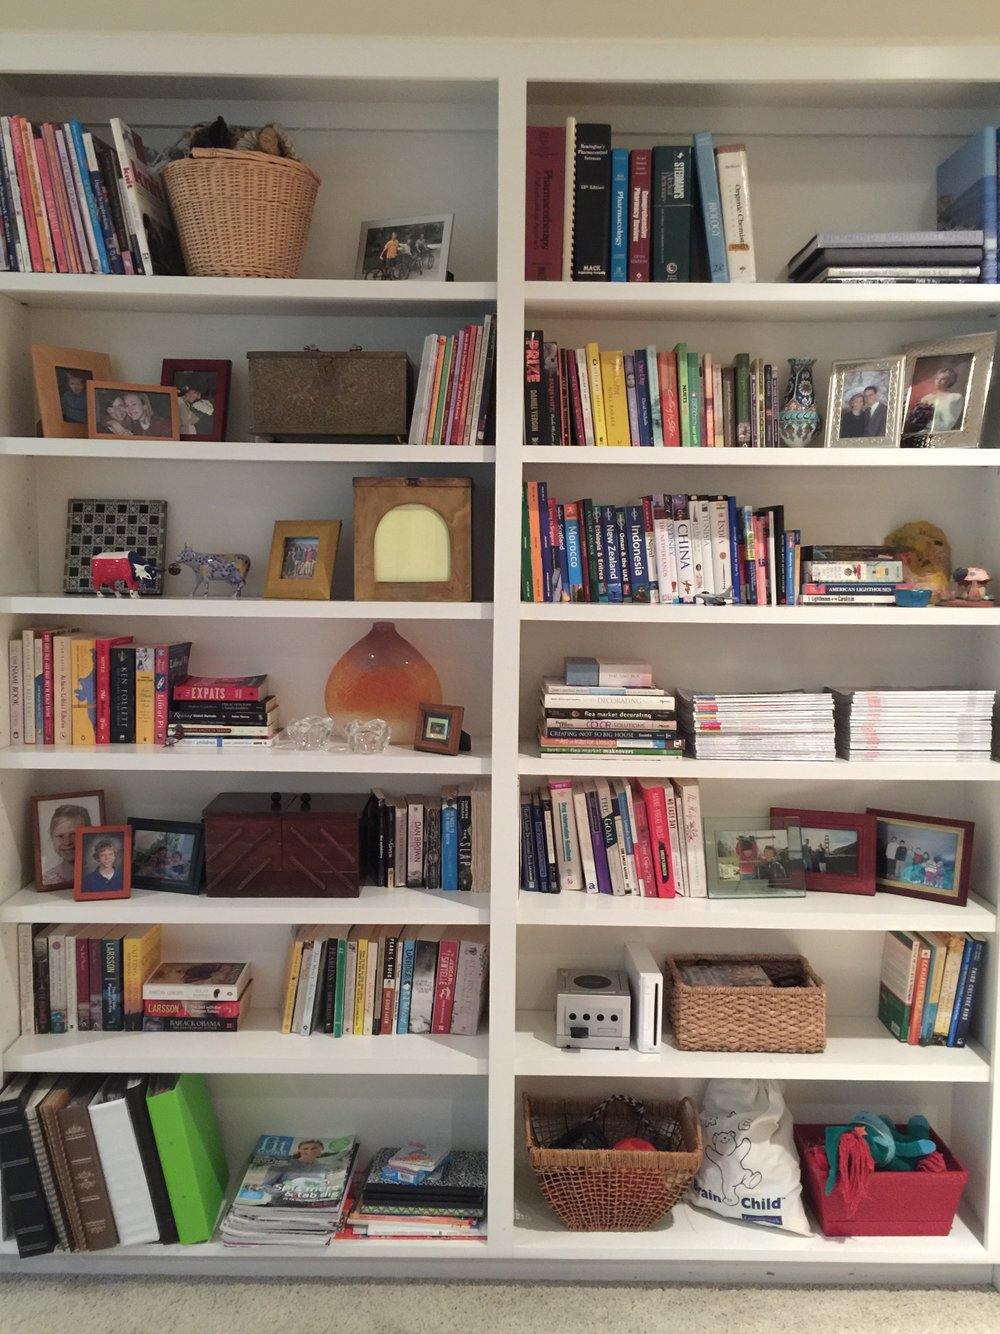 After - Bookshelf styling in library